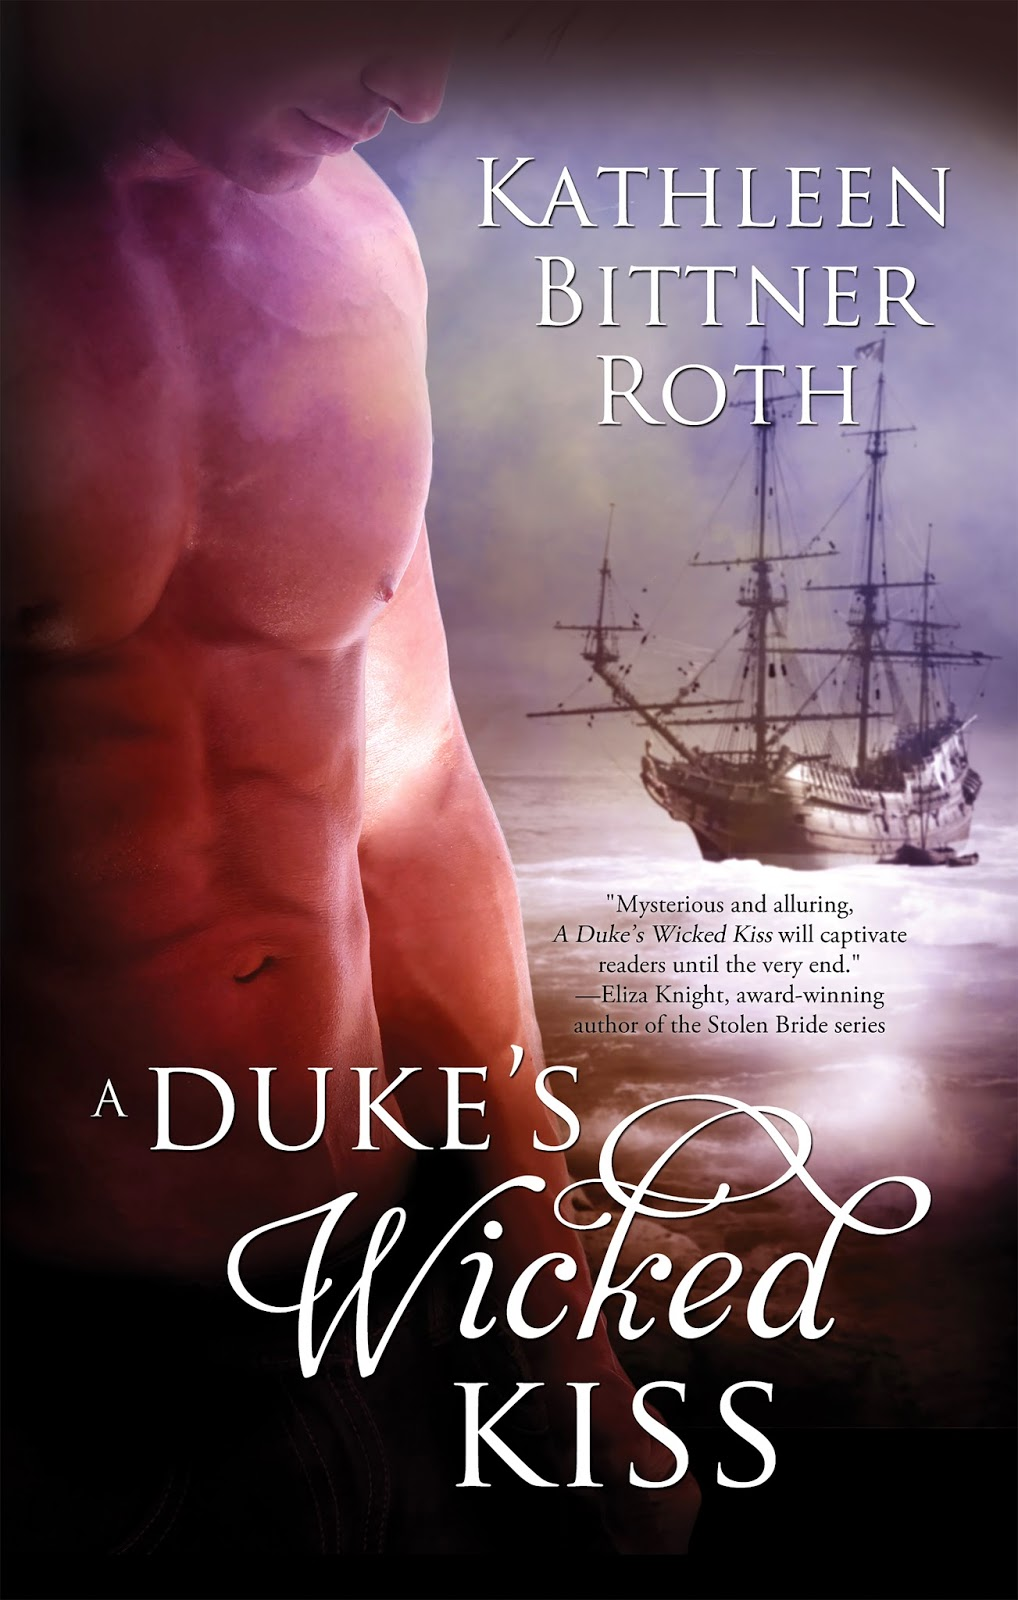 http://readsallthebooks.blogspot.com/2014/09/a-dukes-wicked-kiss-review-and-excerpt.html